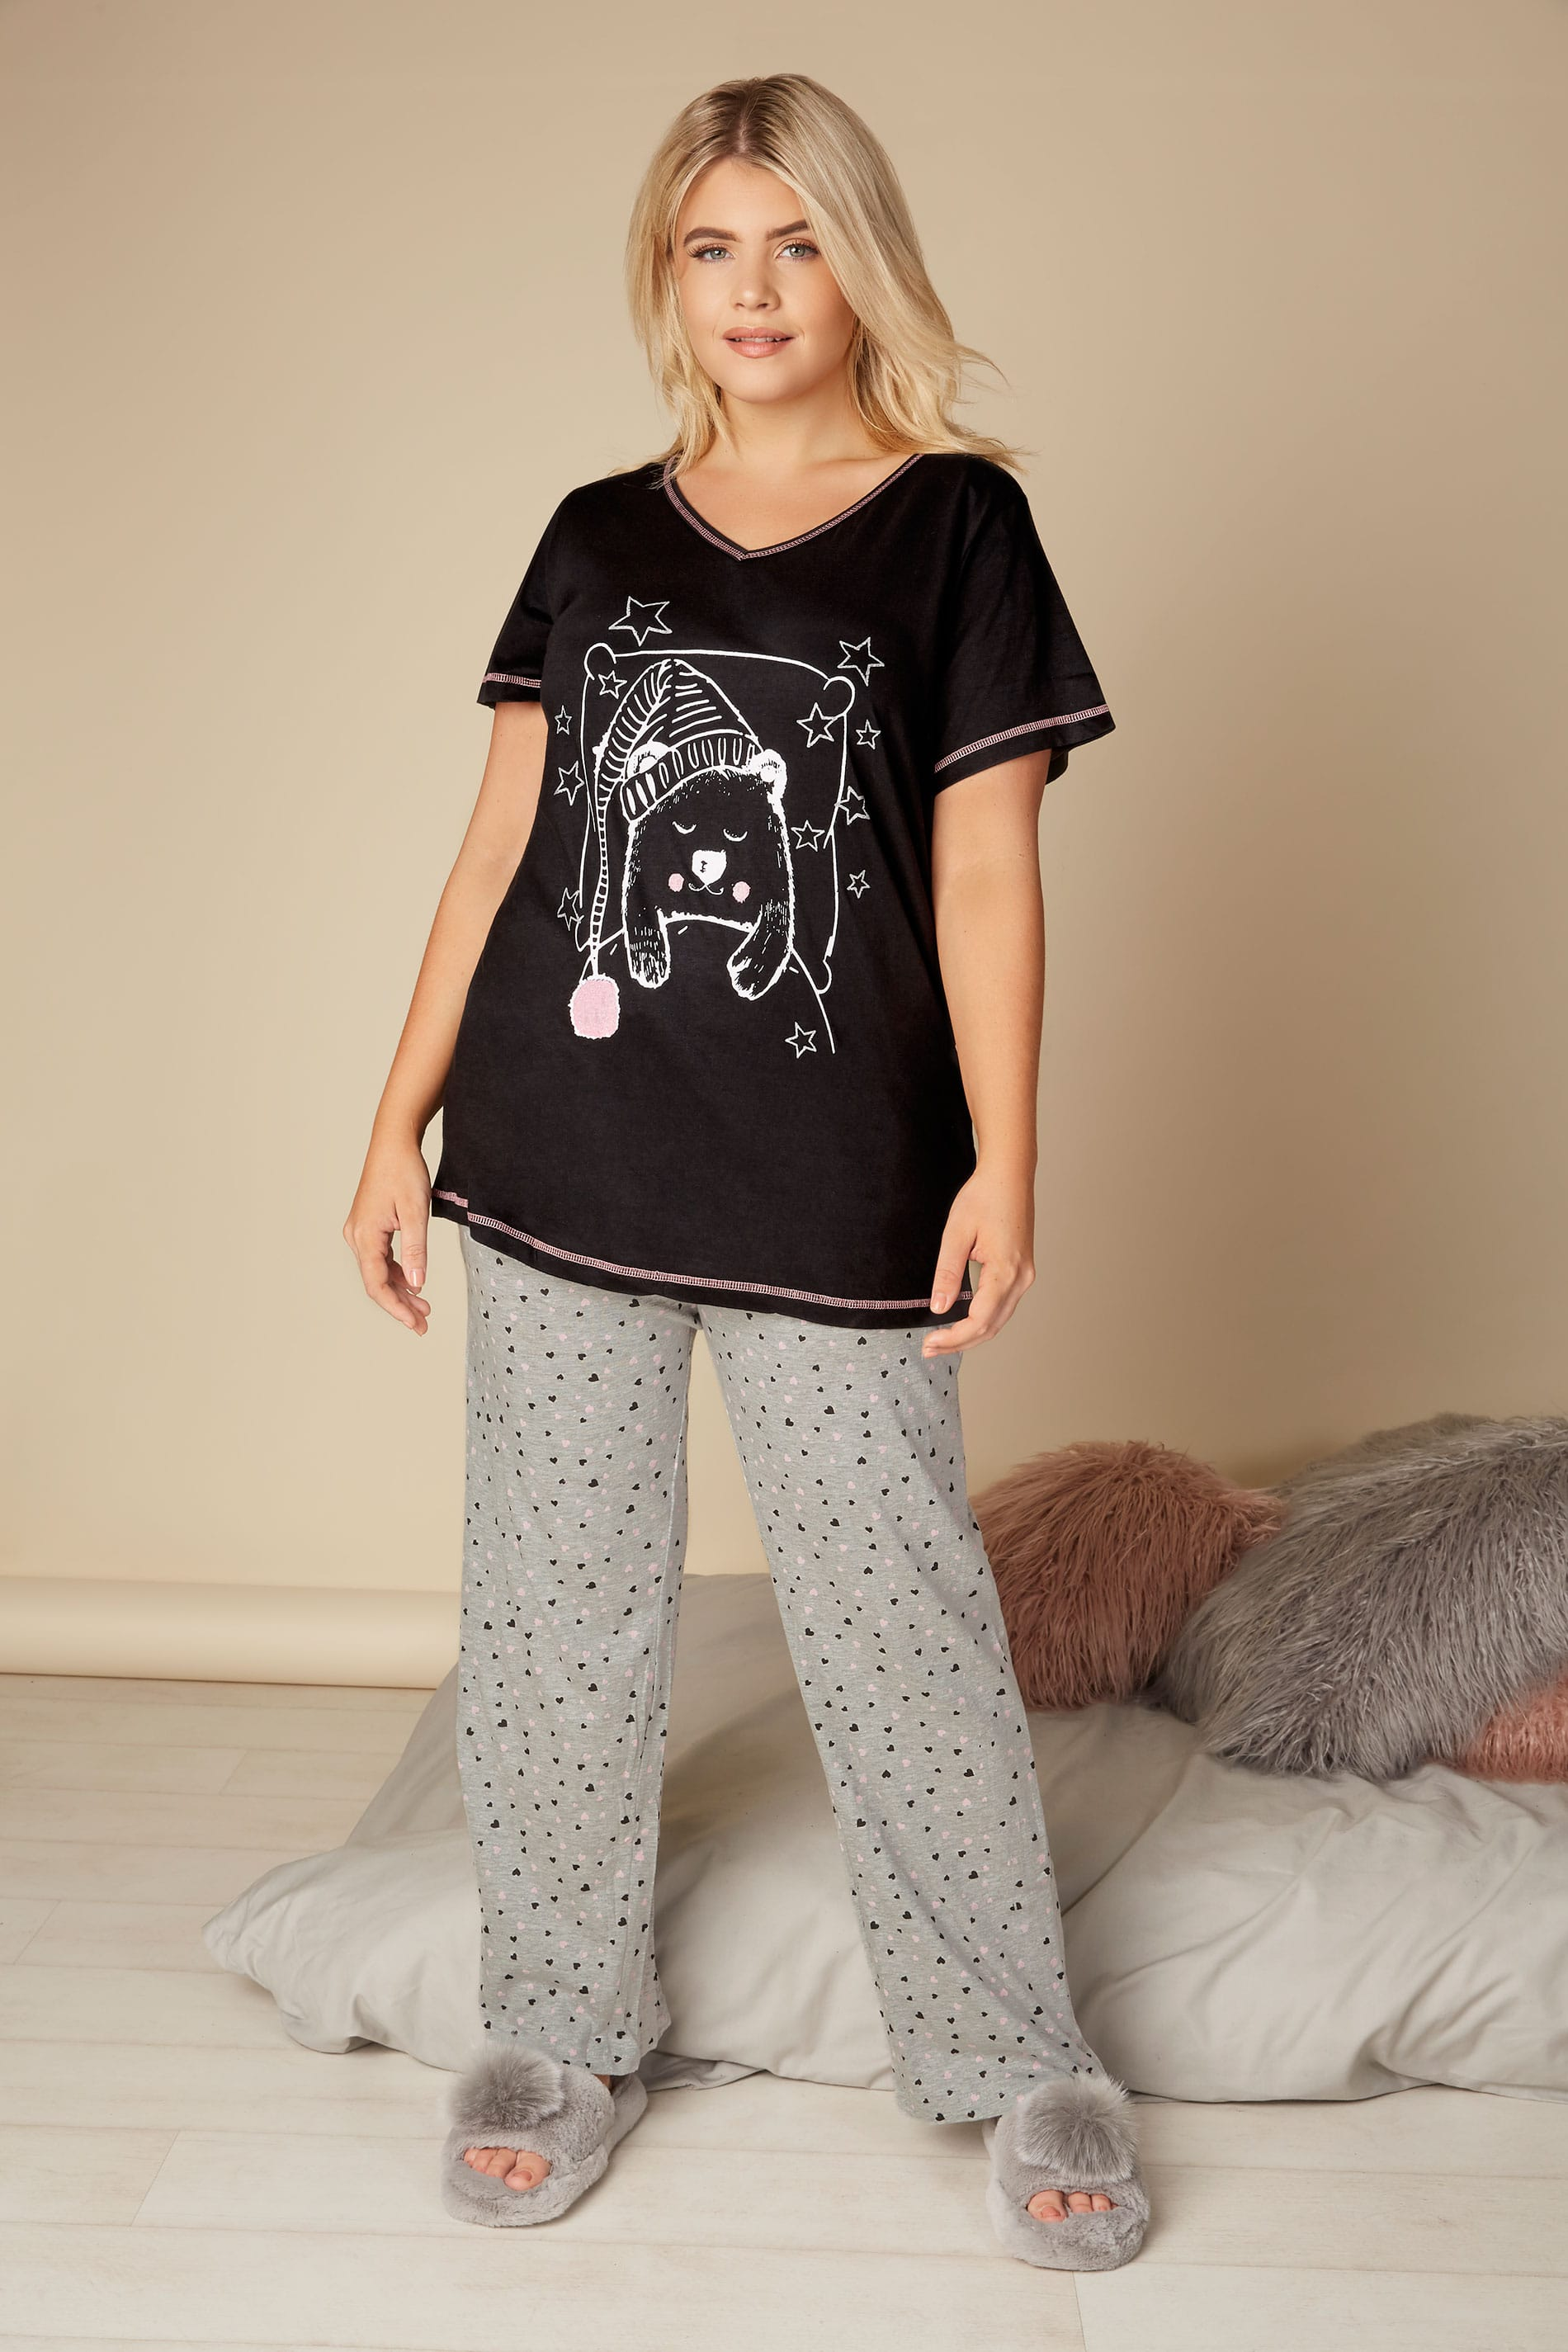 286 Best Images About Tarot On Pinterest: Black Bear Print Pyjama Top, Plus Size 16 To 36